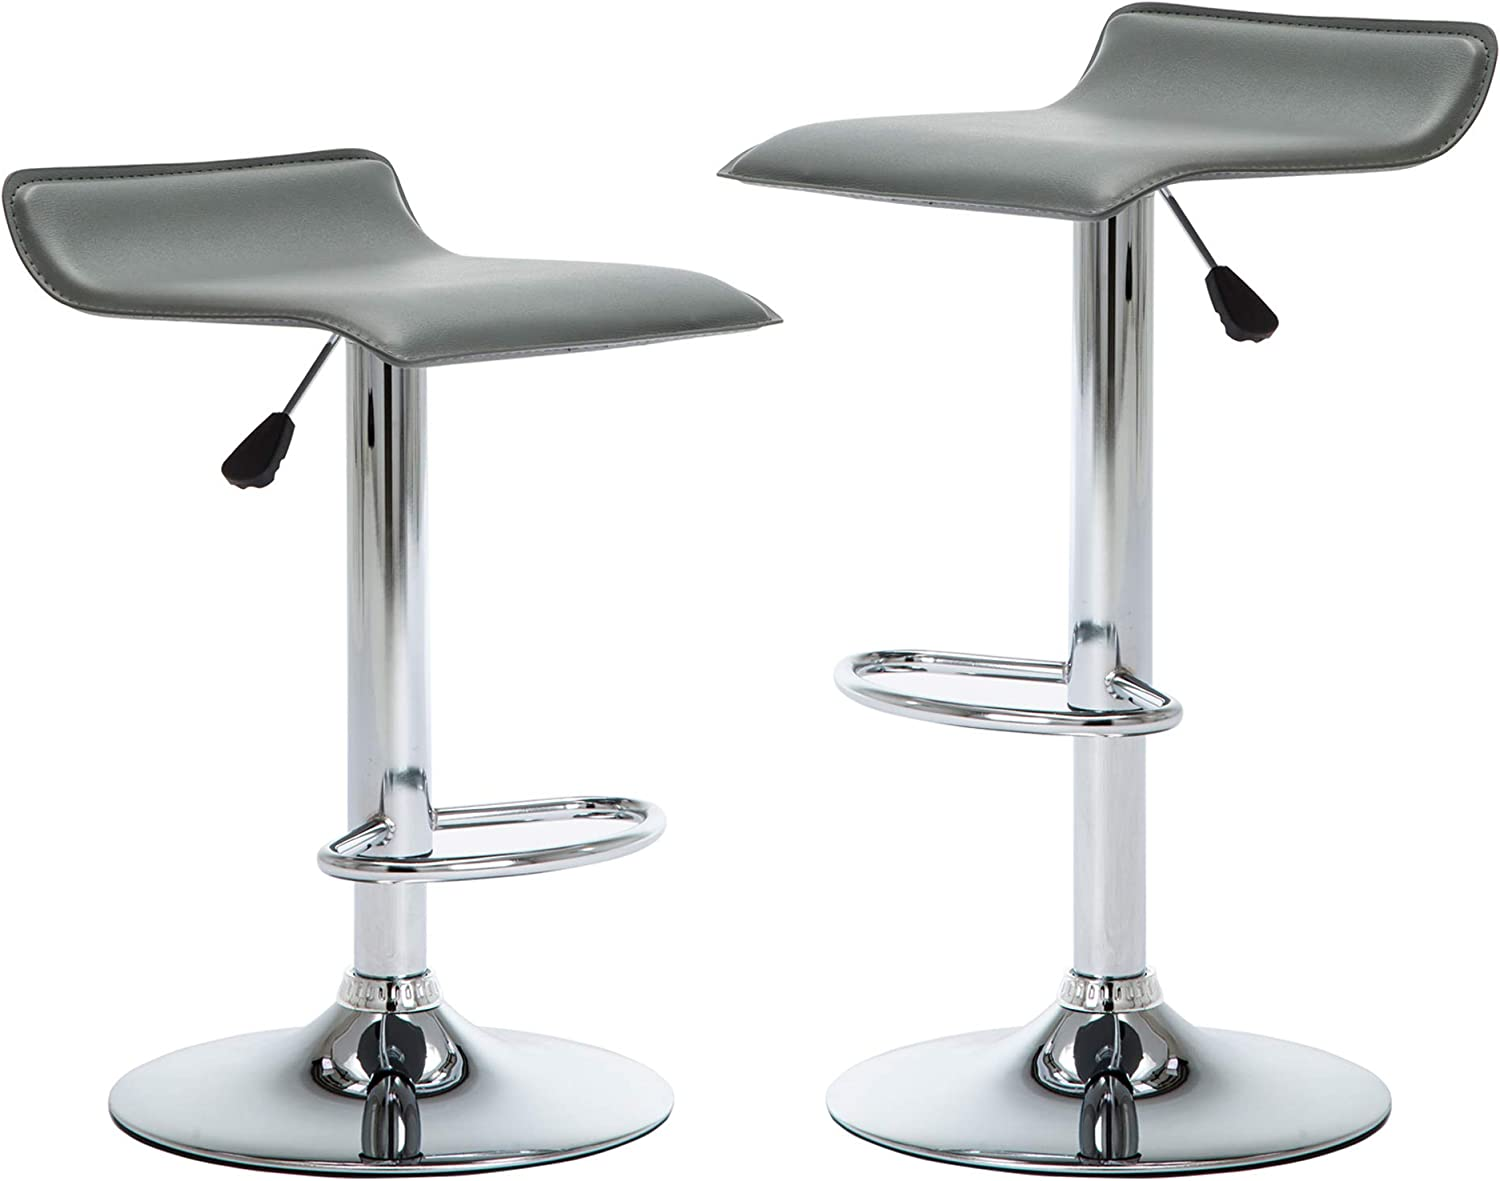 NOBPEINT Contemporary Chrome Air Lift Adjustable Swivel Bar Stool, Set of 2, Gray